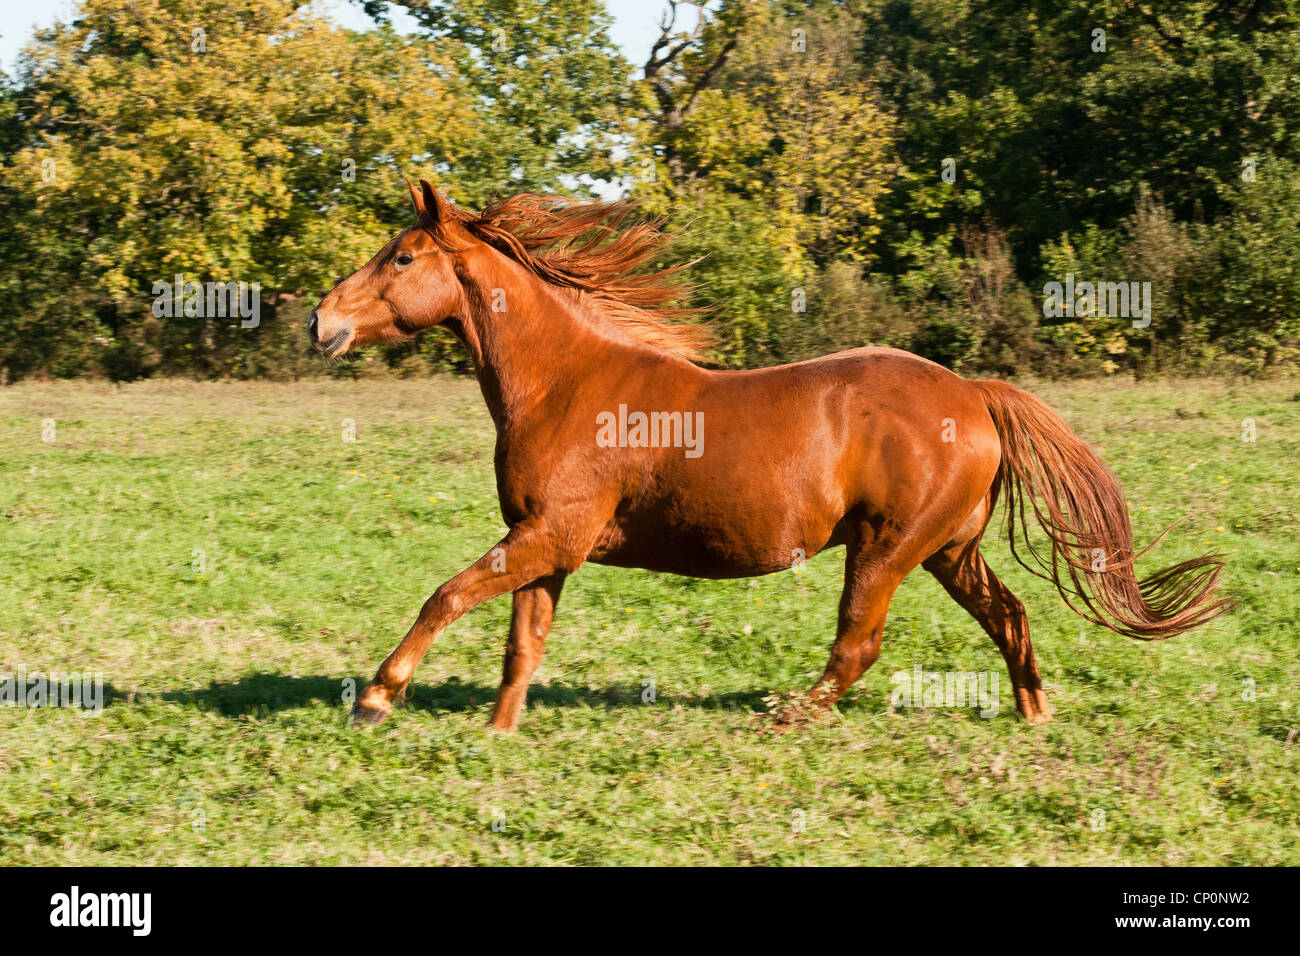 Chestnut Thoroughbred Horse Galloping In A Field On A Sunny